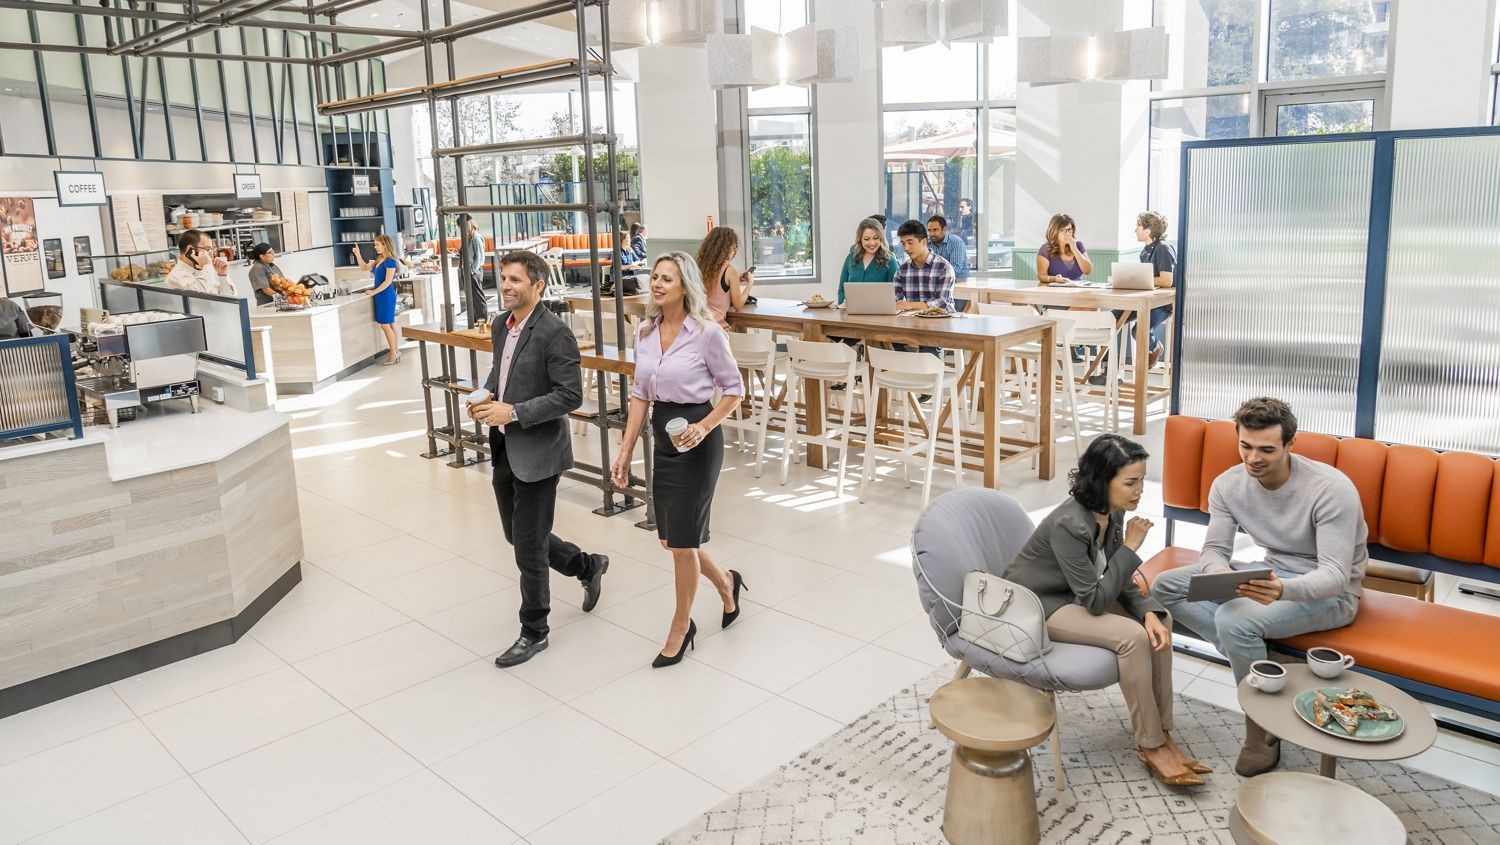 Interior view of people at Pacific Kitchen at Fox Plaza Office Properties in Los Angeles, CA.